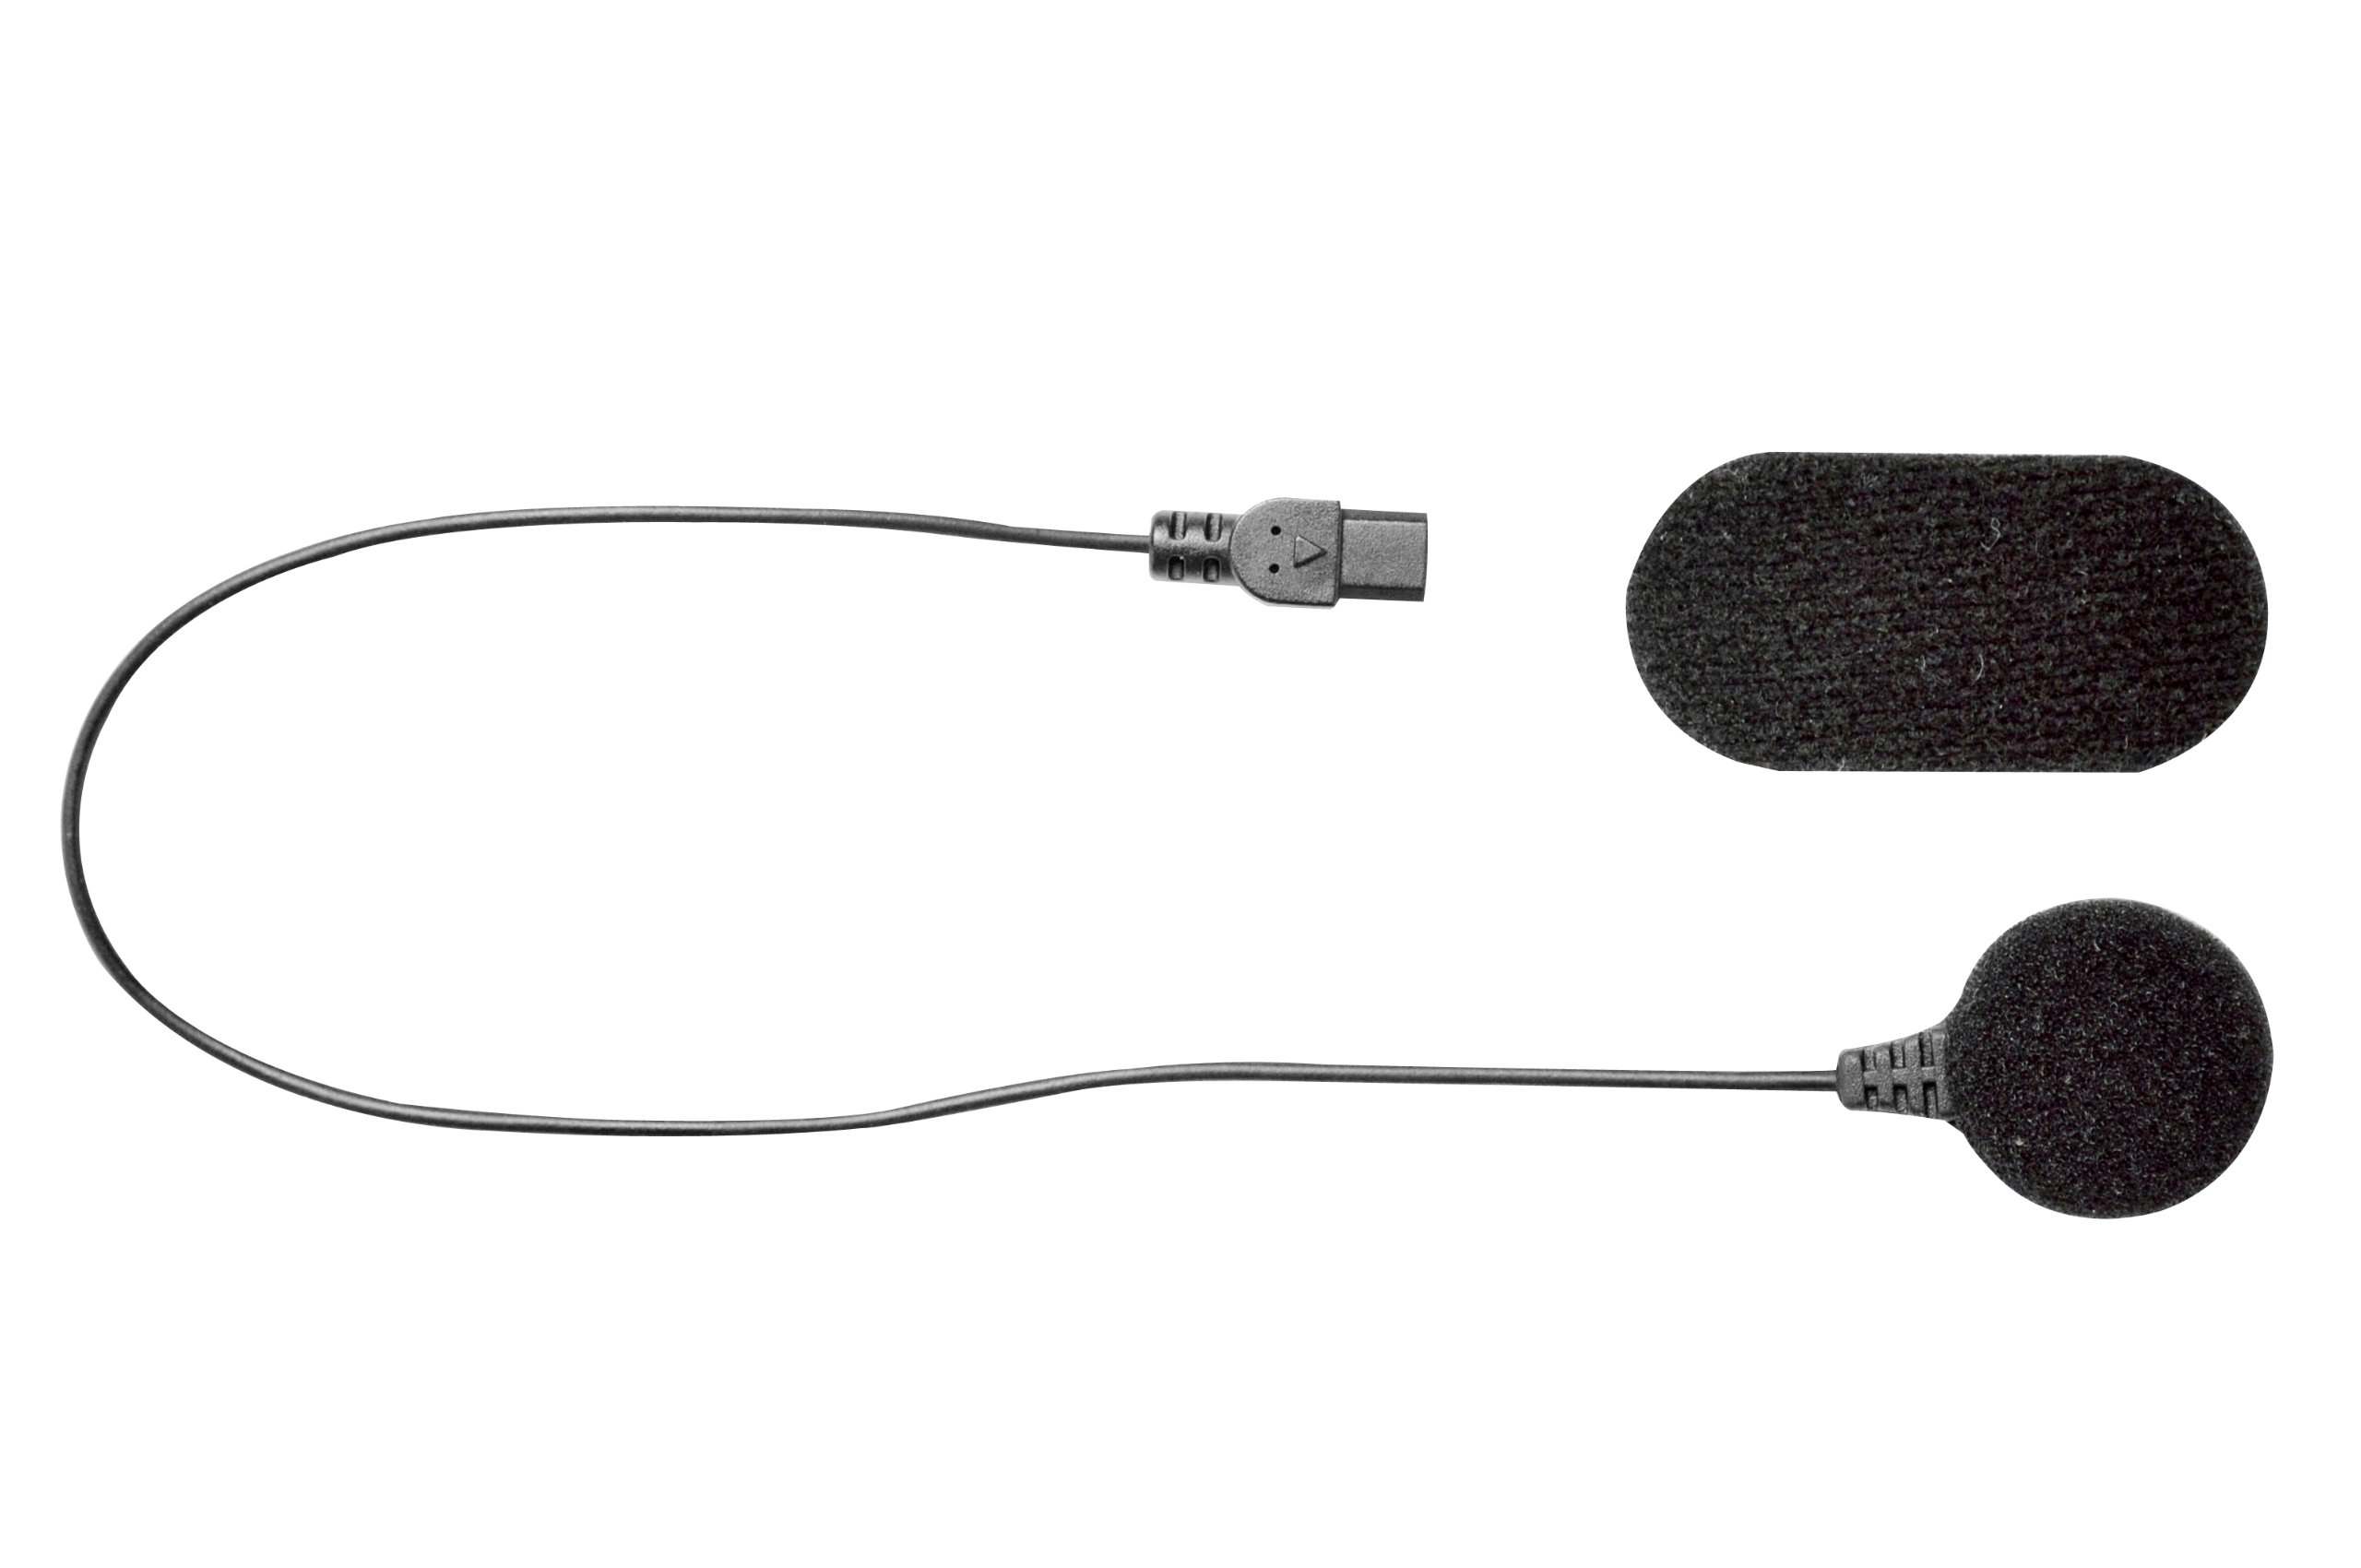 260d5b61109 Get Quotations · Sena SMH5-A0304 Replacement Wired Microphone for SMH5  Bluetooth Headset